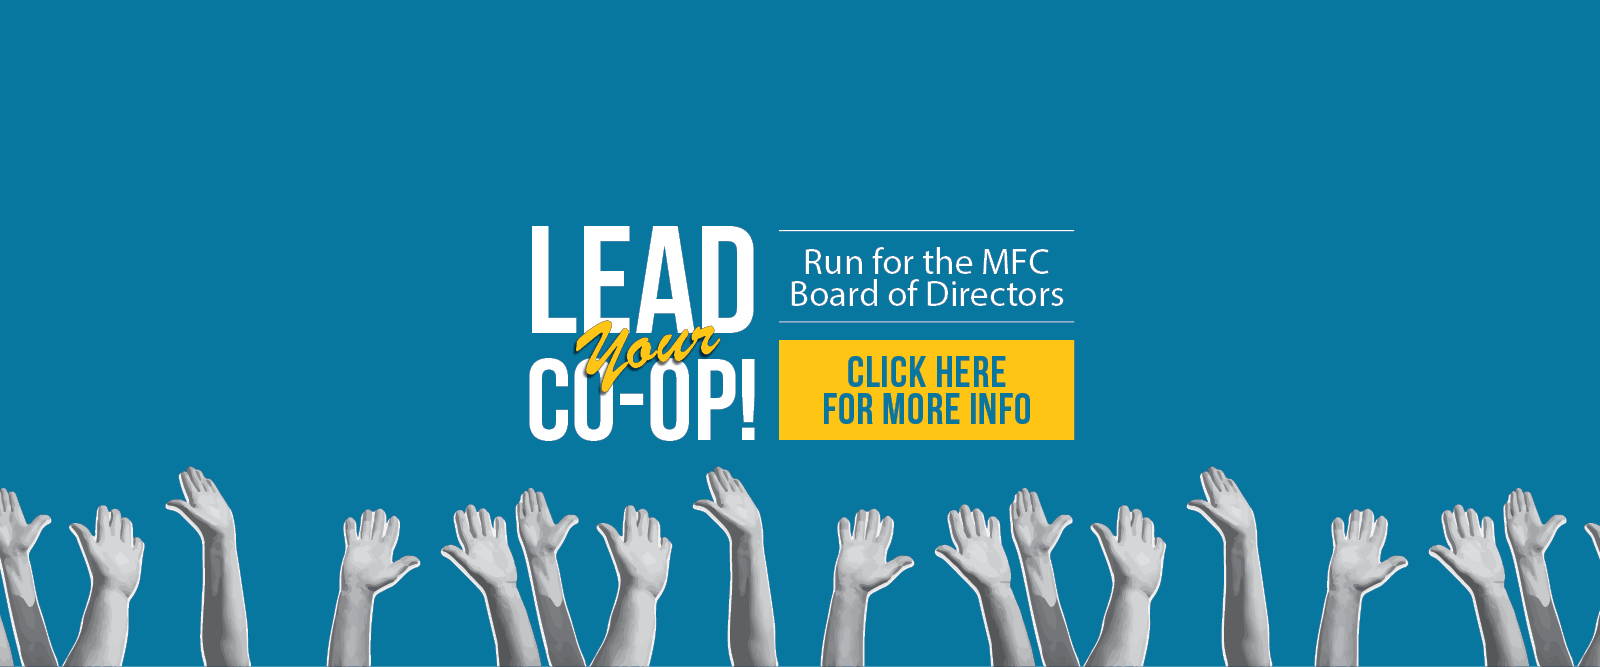 Call for Candidates 2021: Lead the Co-op